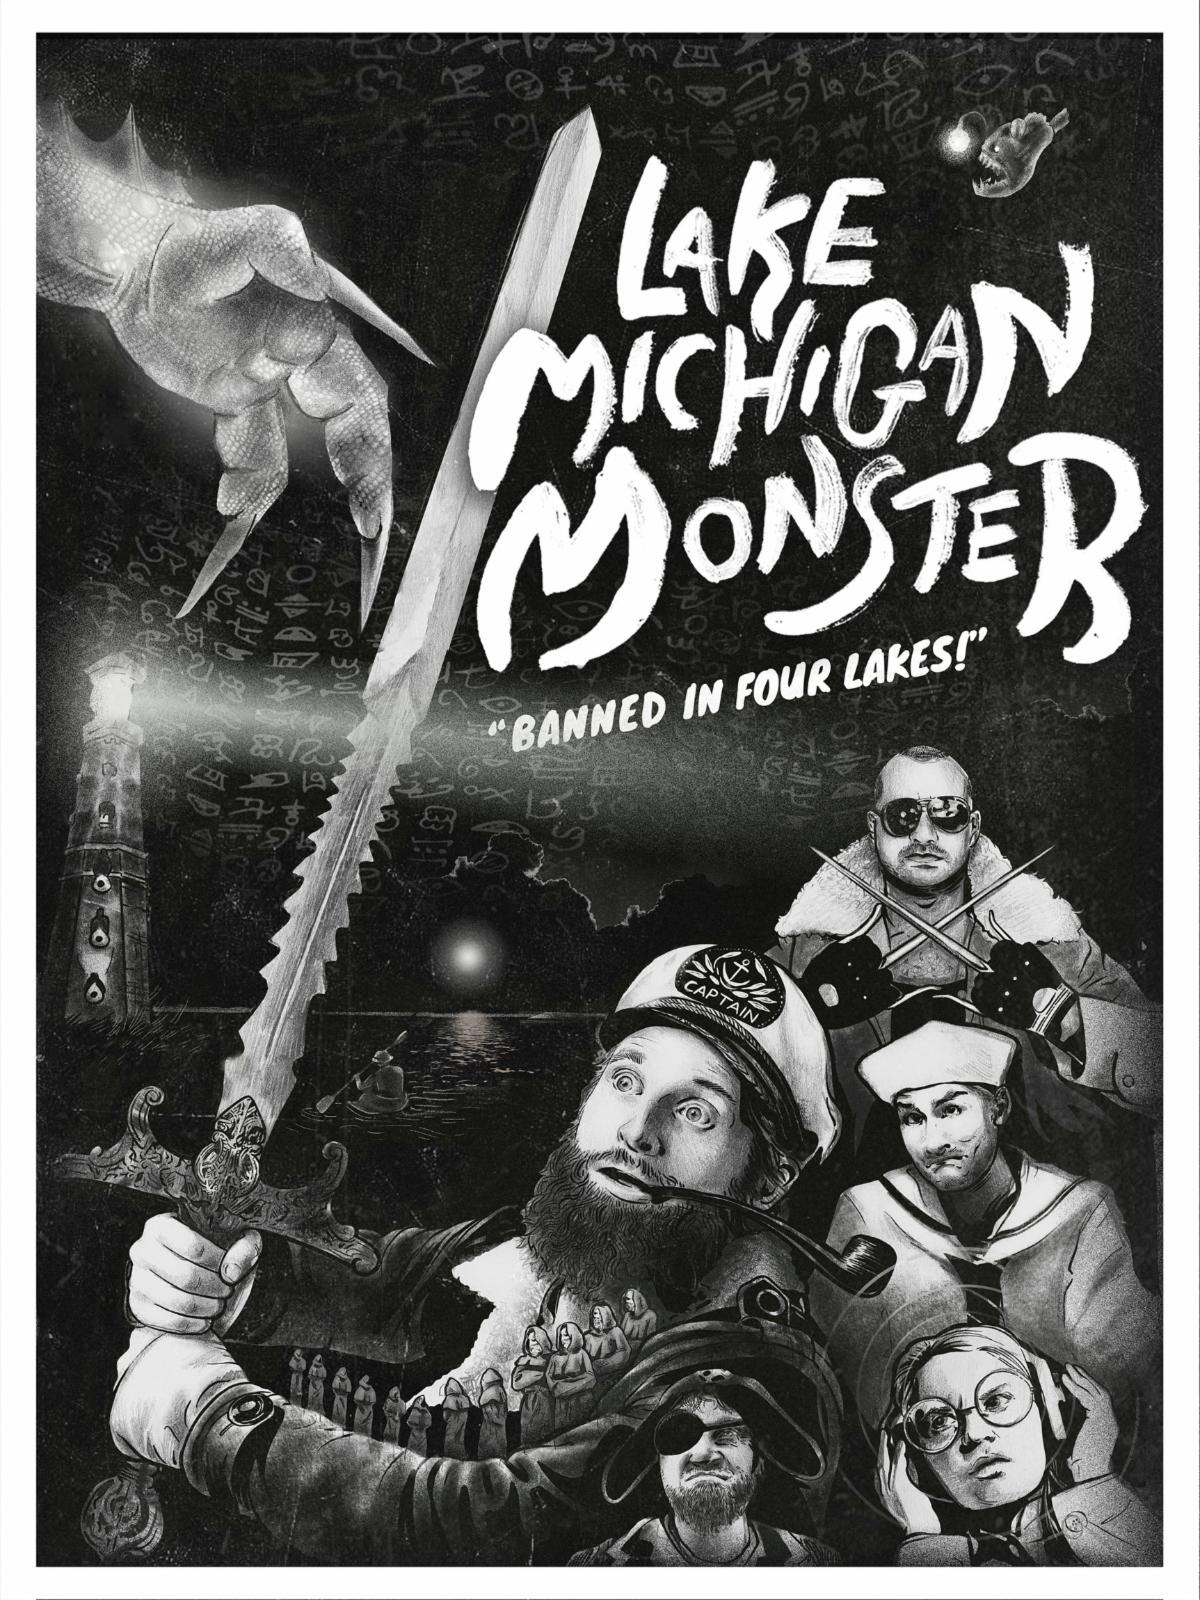 Poster for Lake Michigan Monster